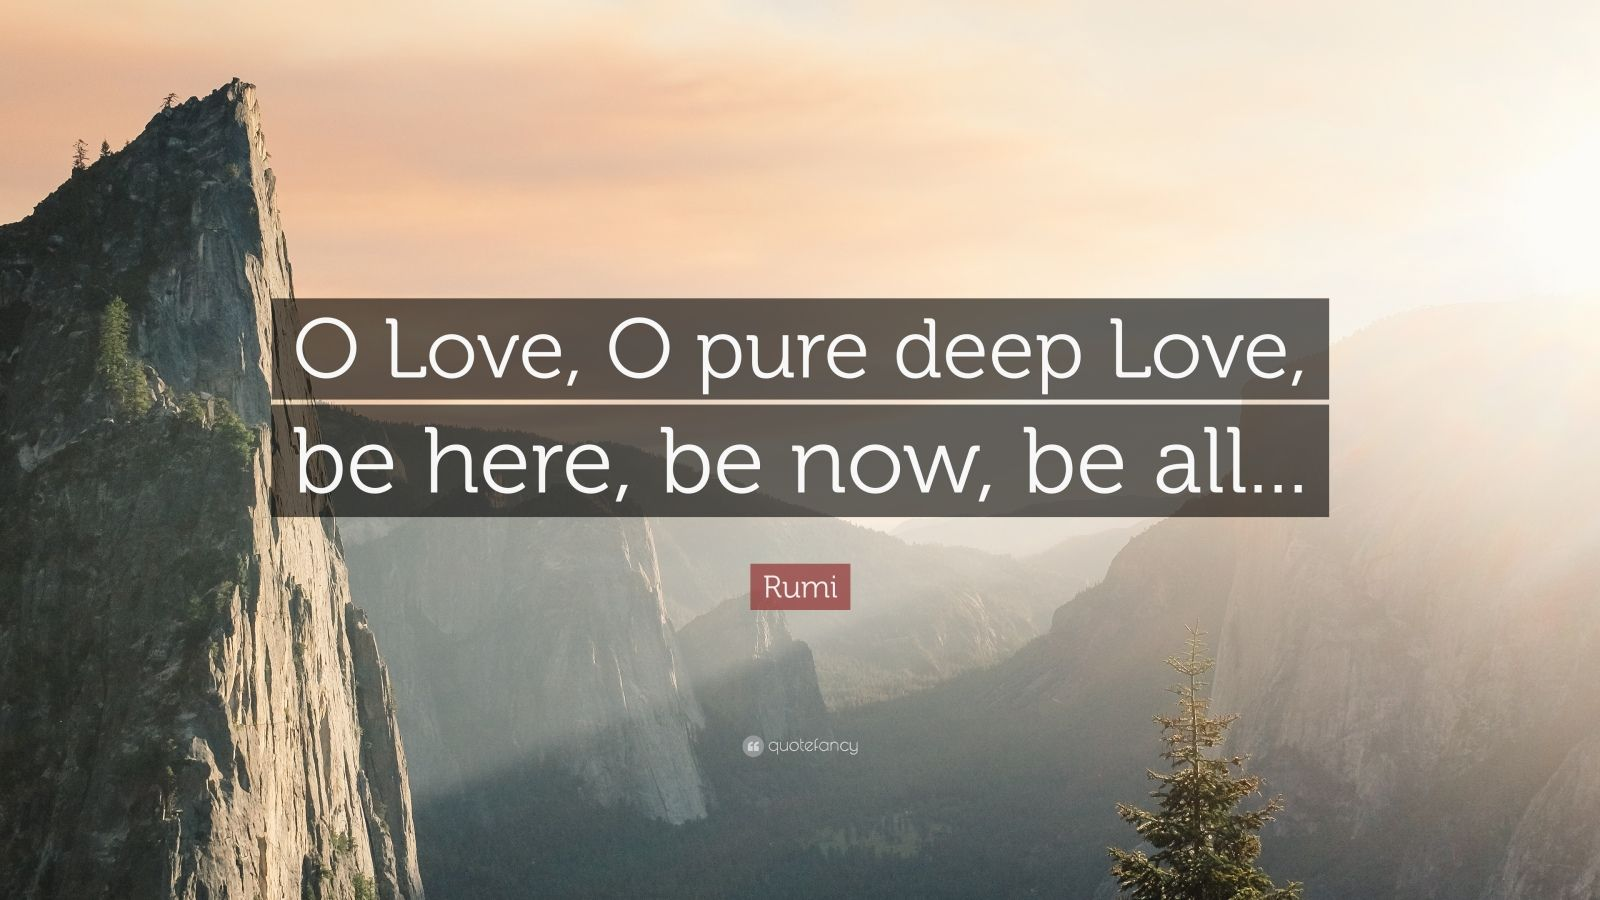 Rumi Quotes 100 Wallpapers Quotefancy